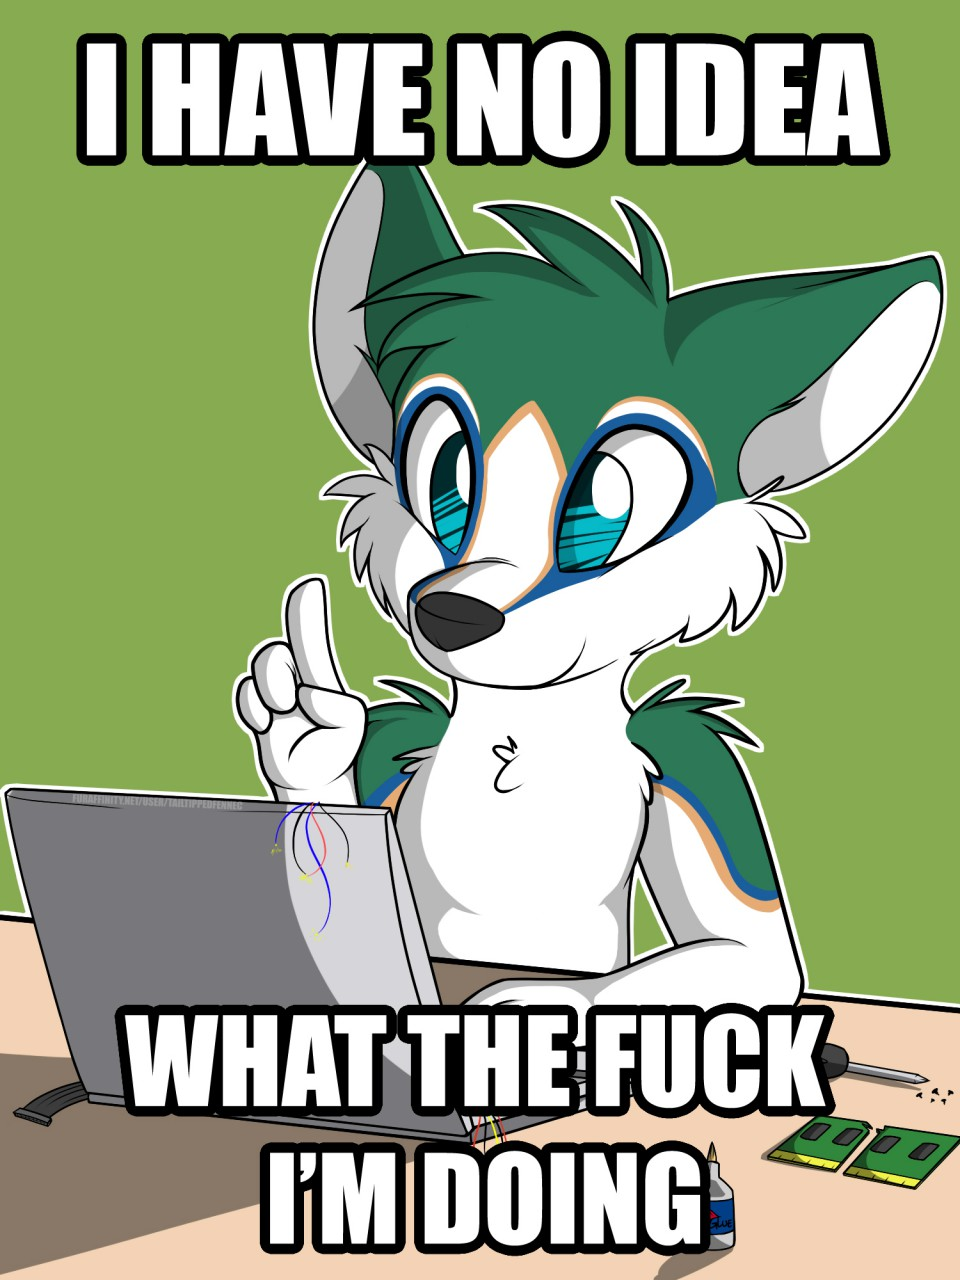 e926 2014 4_fingers anthro black_nose blue_eyes blue_fur canine computer cute dog doing_it_wrong english_text fur glue green_background green_fur hi_res humor husky image_macro lol_comments male mammal meme multicolored_fur nekohaiku nude playful profanity reaction_image screwdriver simple_background sitting smile solo table tailtippedfennec text tools watermark white_fur wire yellow_fur